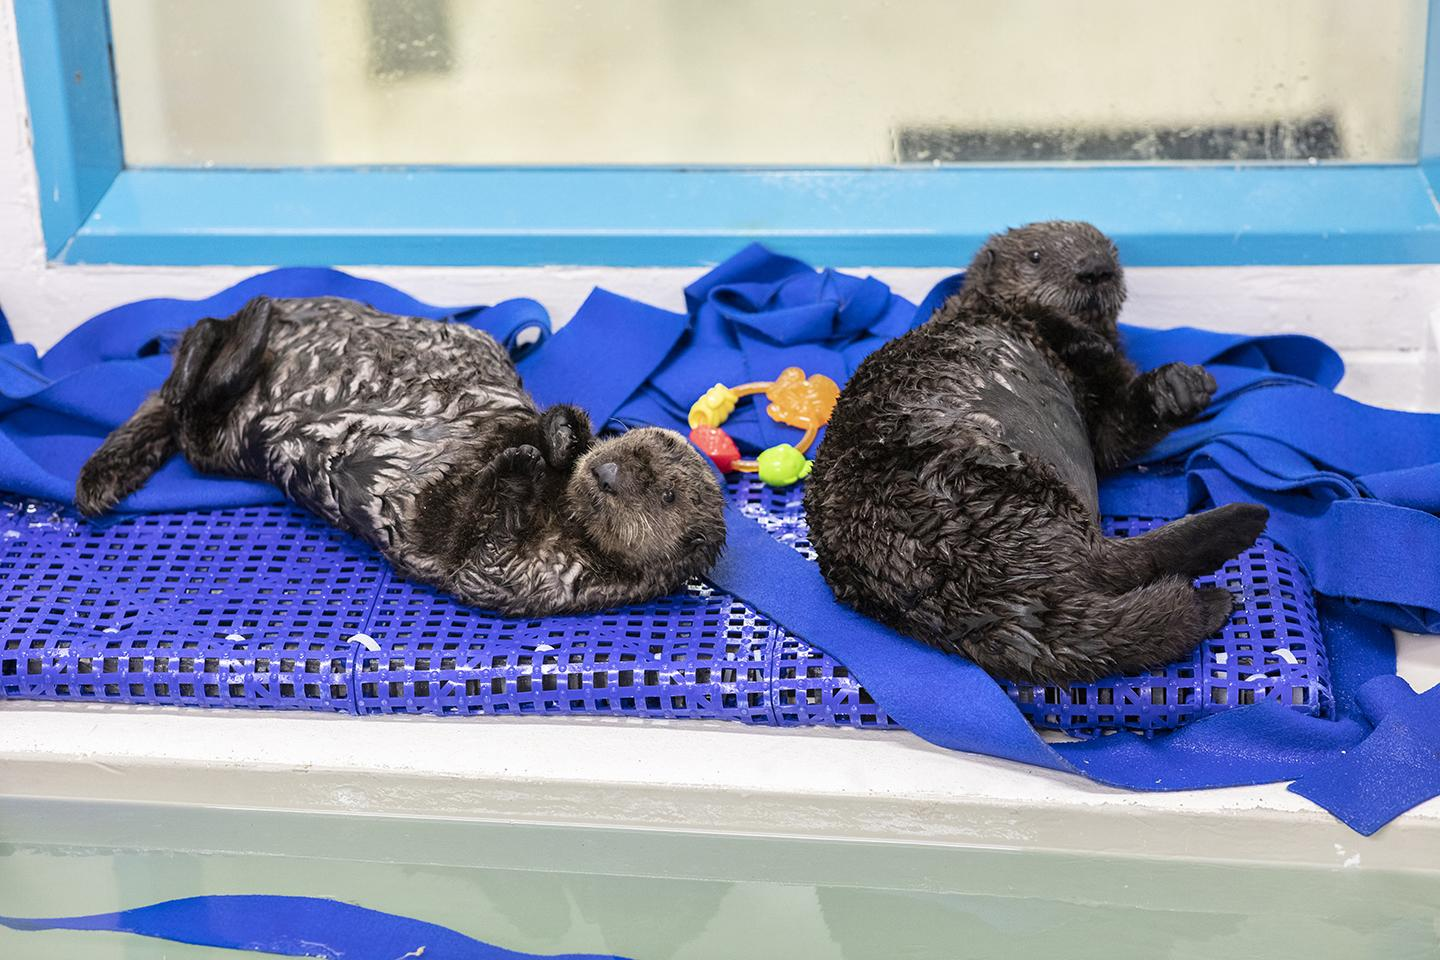 The pups play with plastic toys and can often be found wrestling playfully with each other. (Brenna Hernandez / Shedd Aquarium)